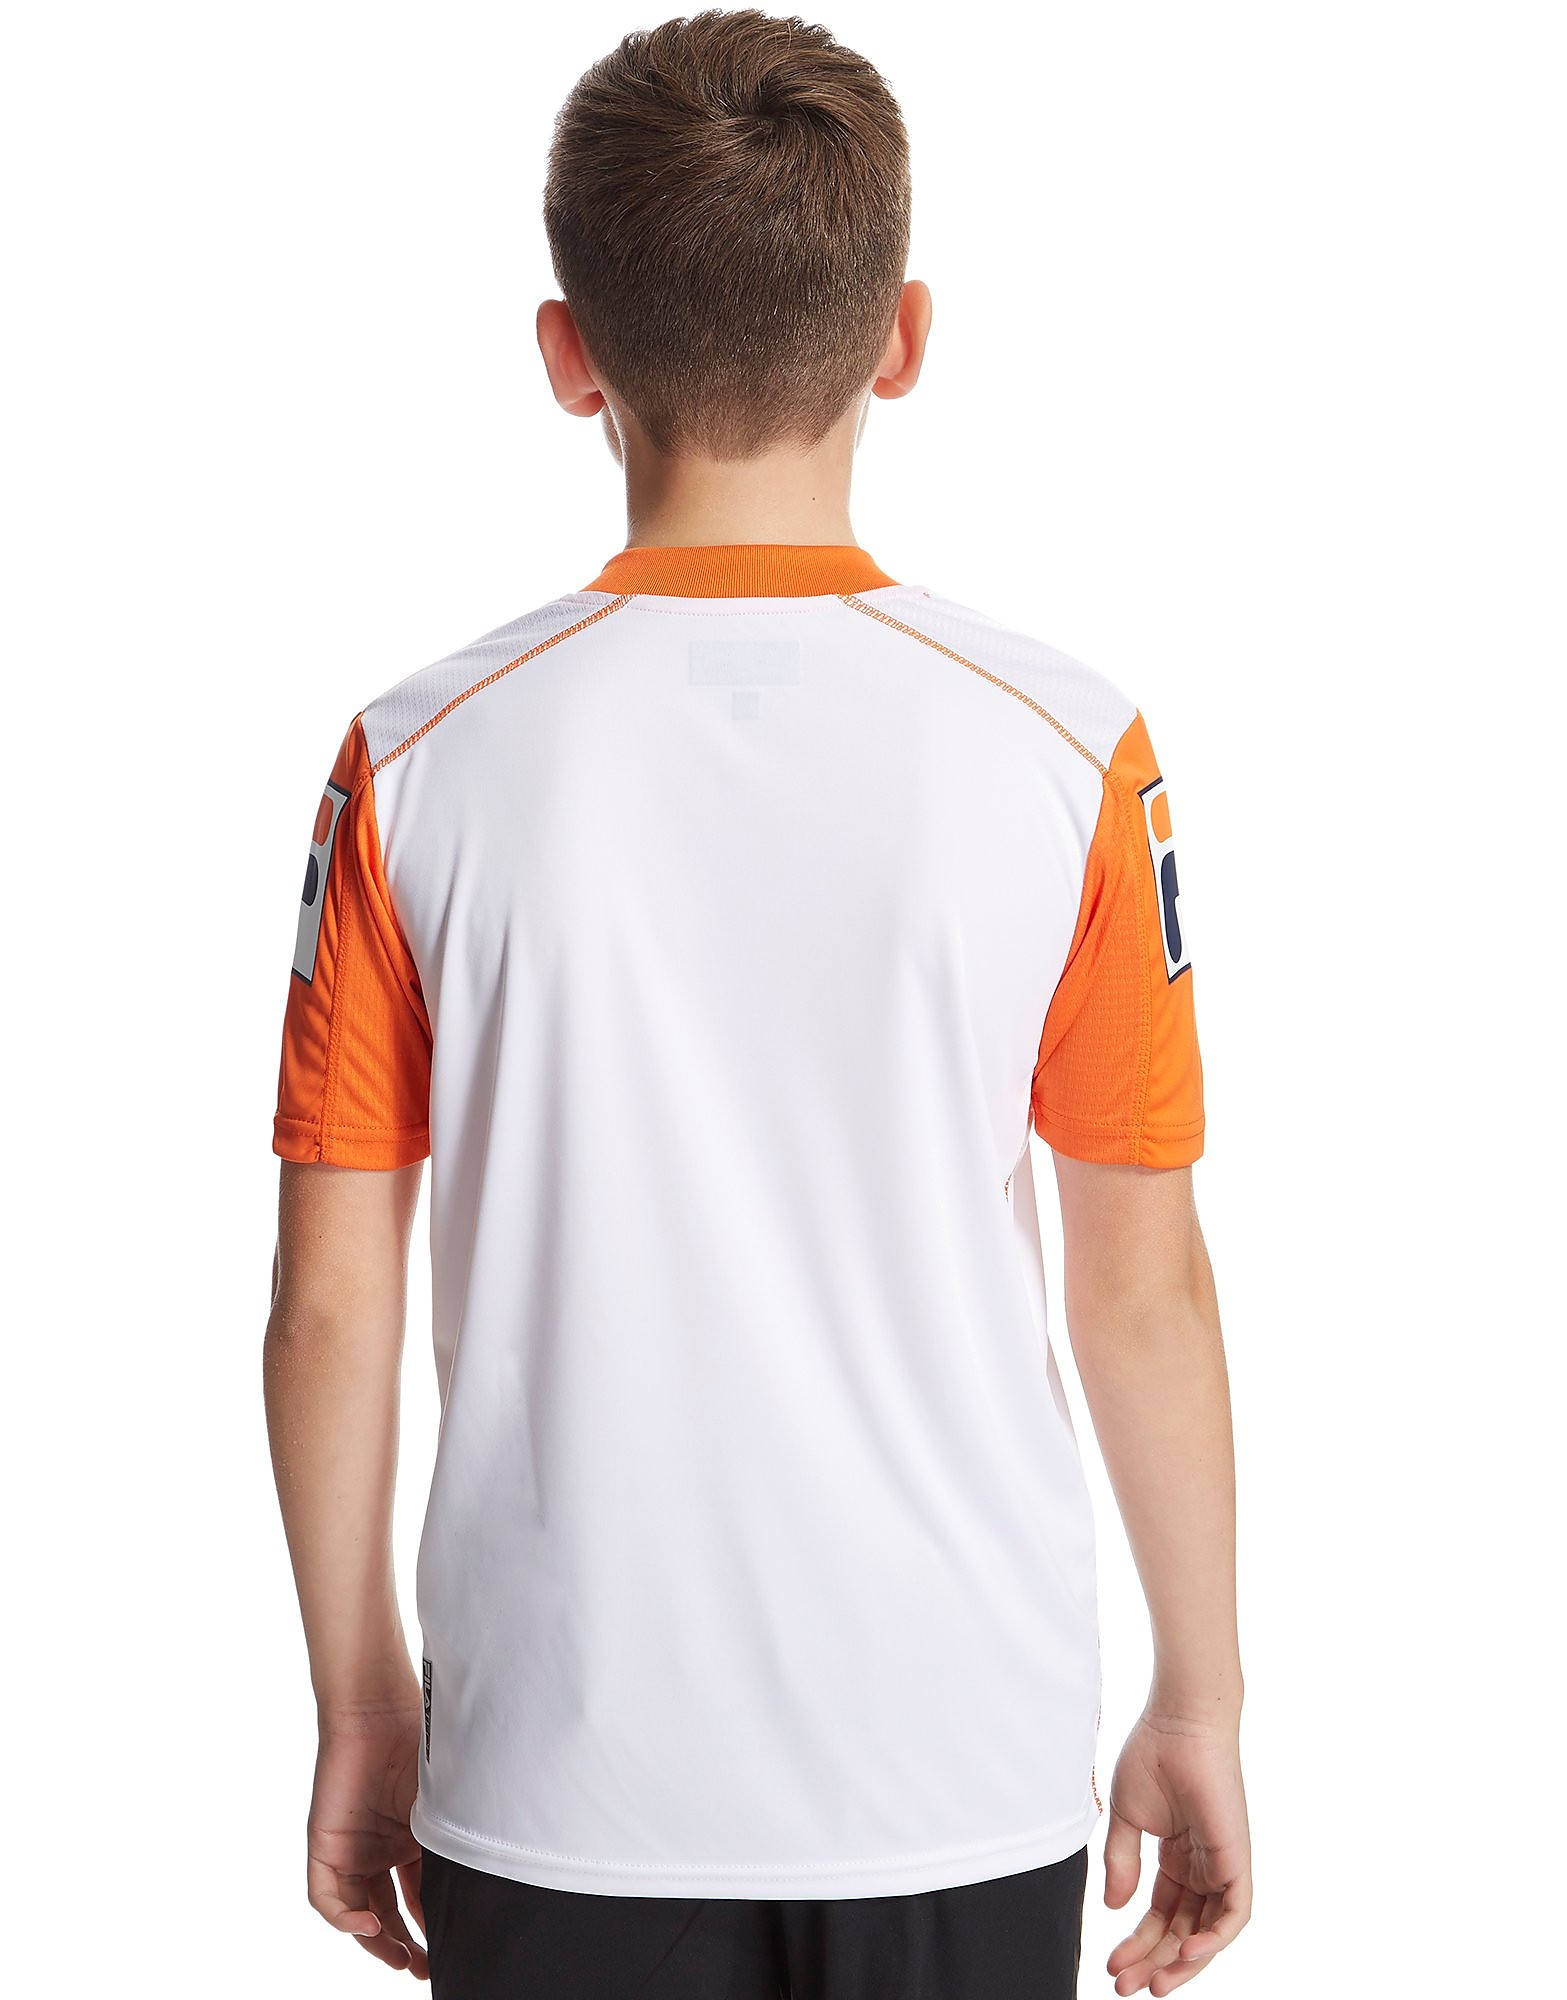 Fila Luton Town FC Away 2015/16 Shirt Junior